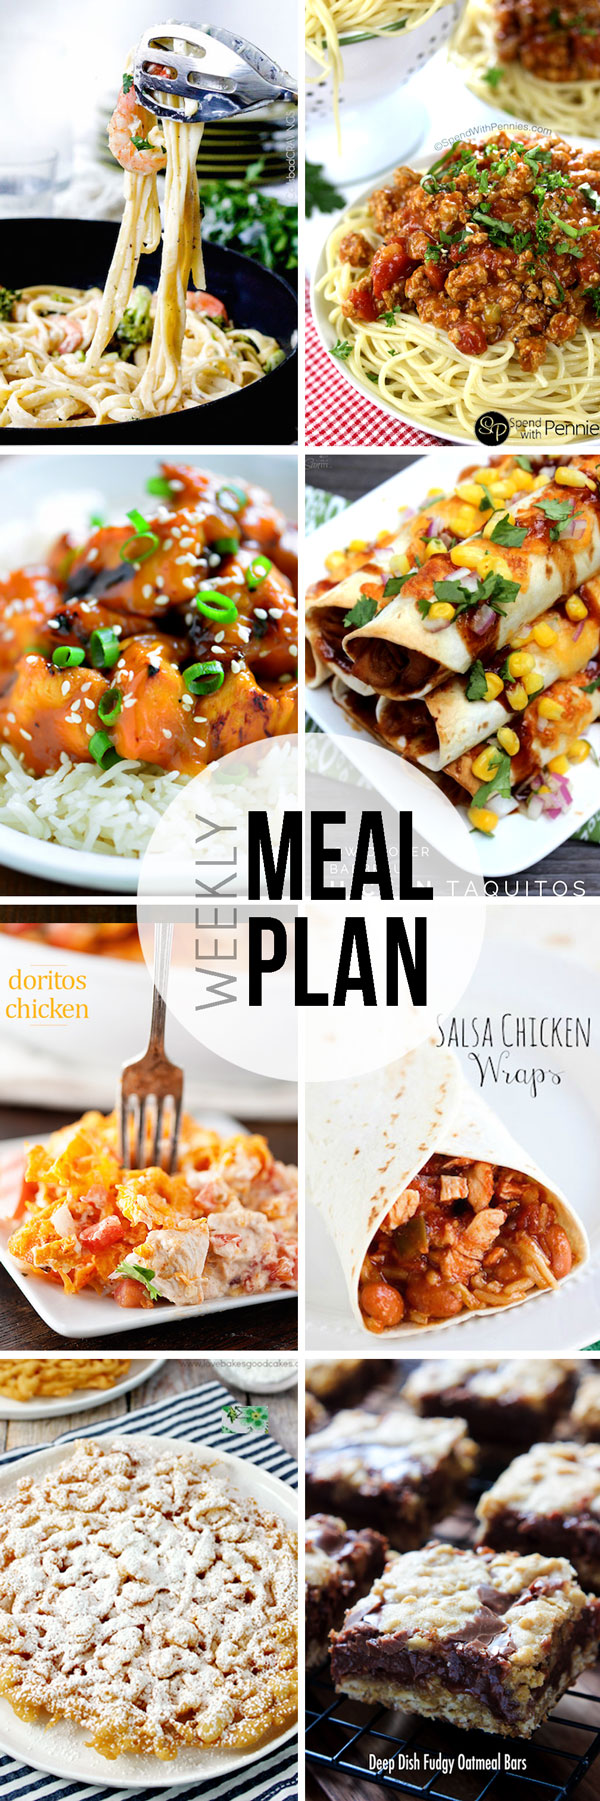 Easy Meal Plan #7.